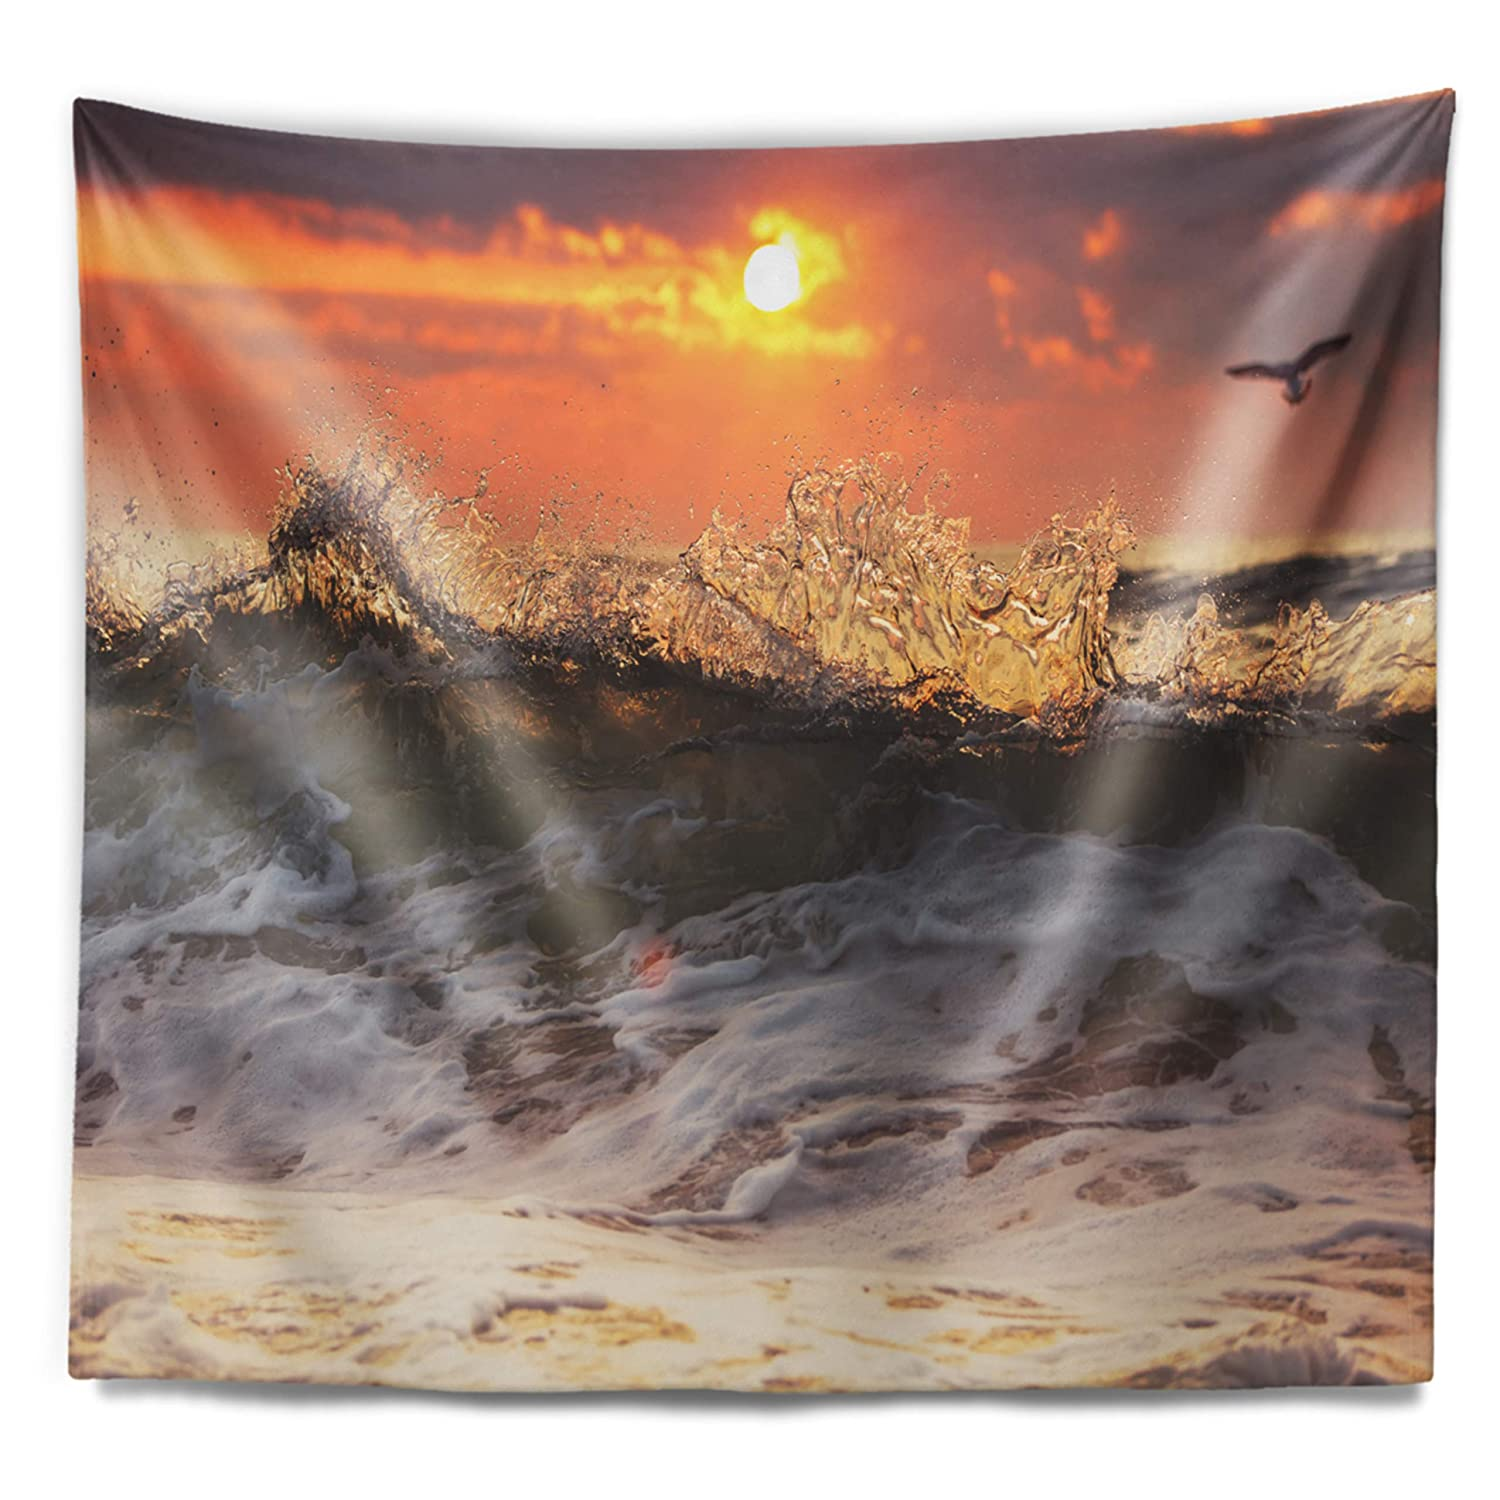 Designart TAP10574-80-68  Sunrise and Roaring Ocean Waves Seascape Blanket D/écor Art for Home and Office Wall Tapestry x Large x 68 in 80 in in